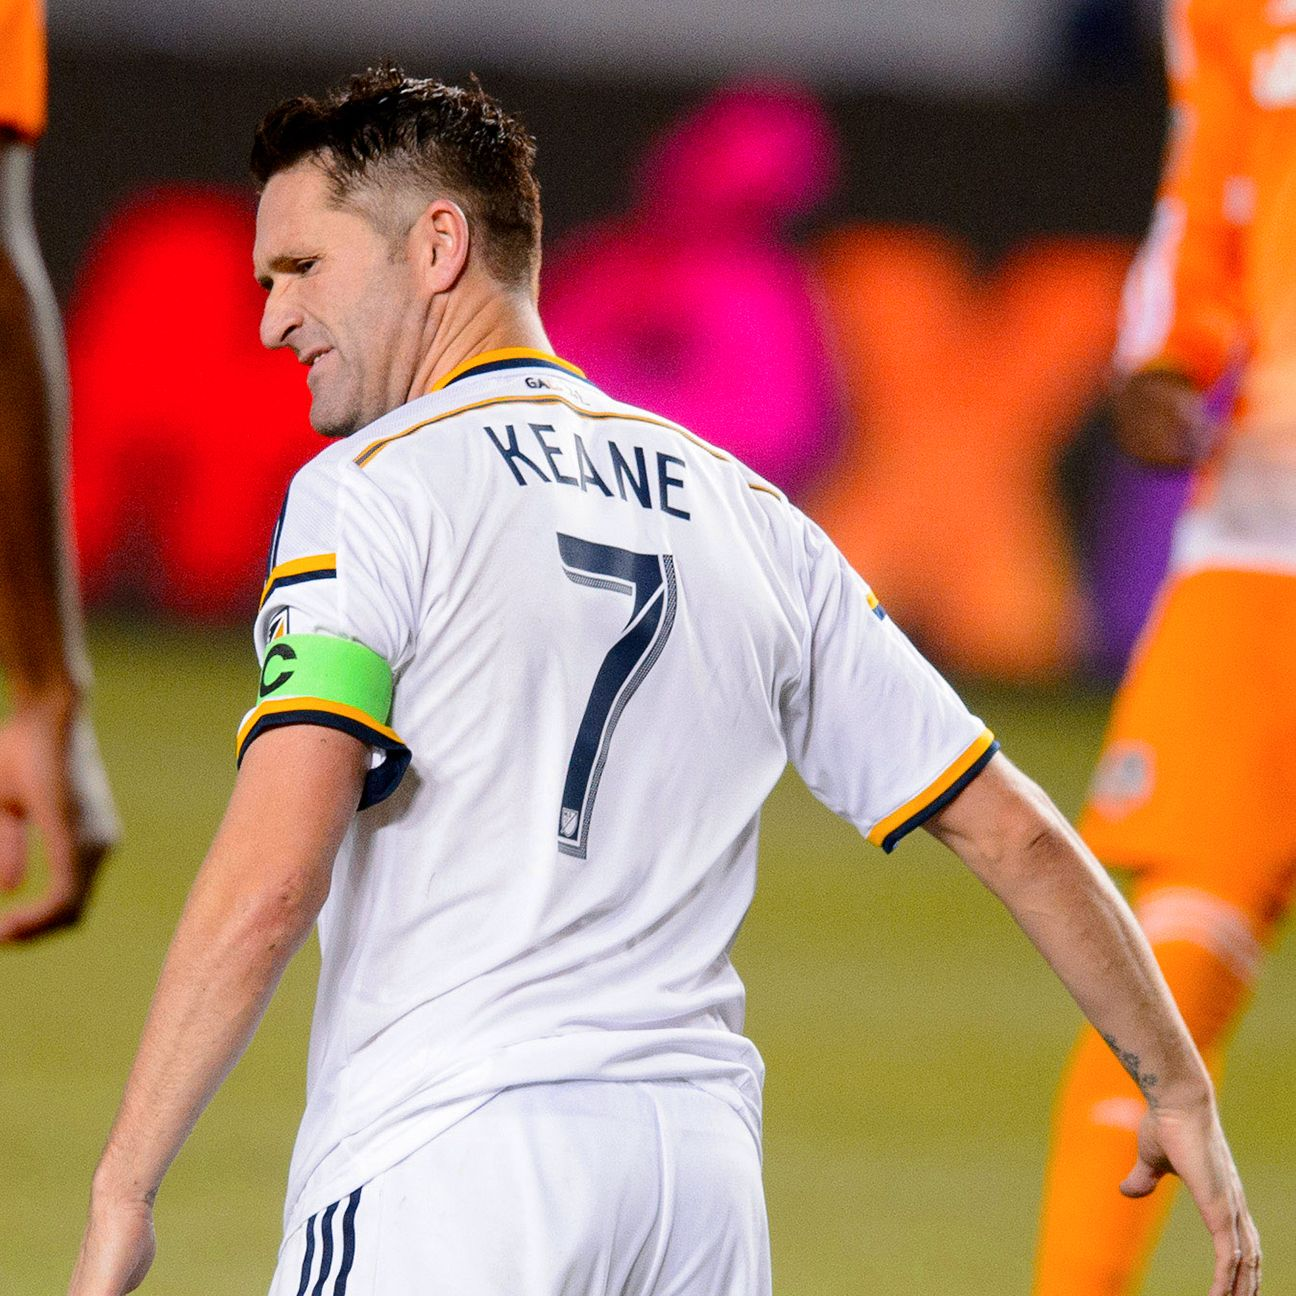 Injuries to key players like Robbie Keane have hampered the Galaxy's start.